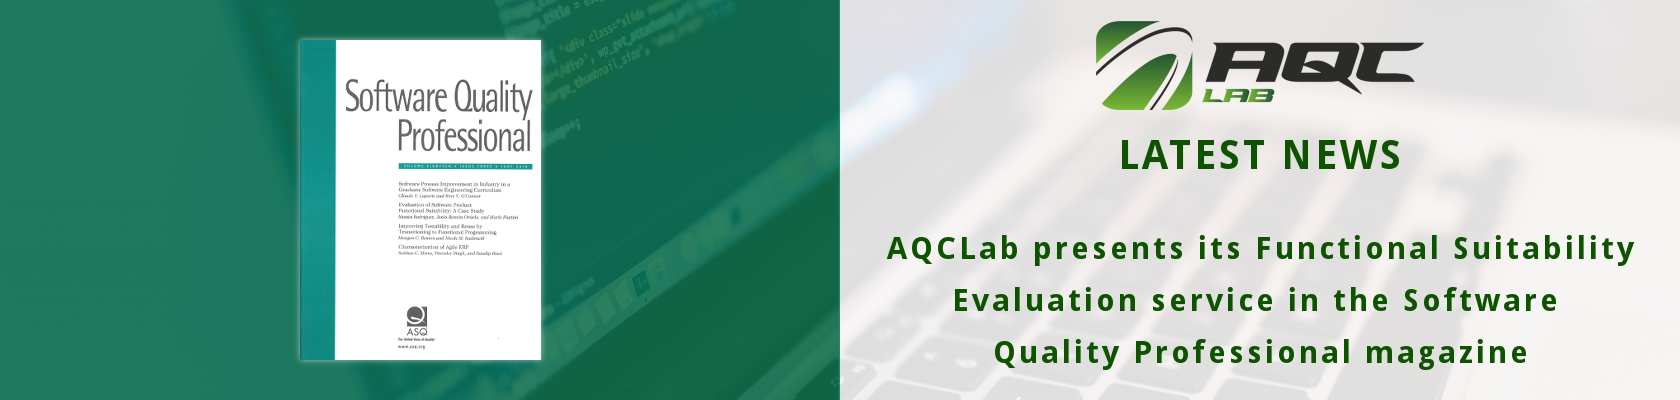 [JUNE 2016] AQCLab presents the Functional Suitability evaluation in the Software Quality Professional magazine